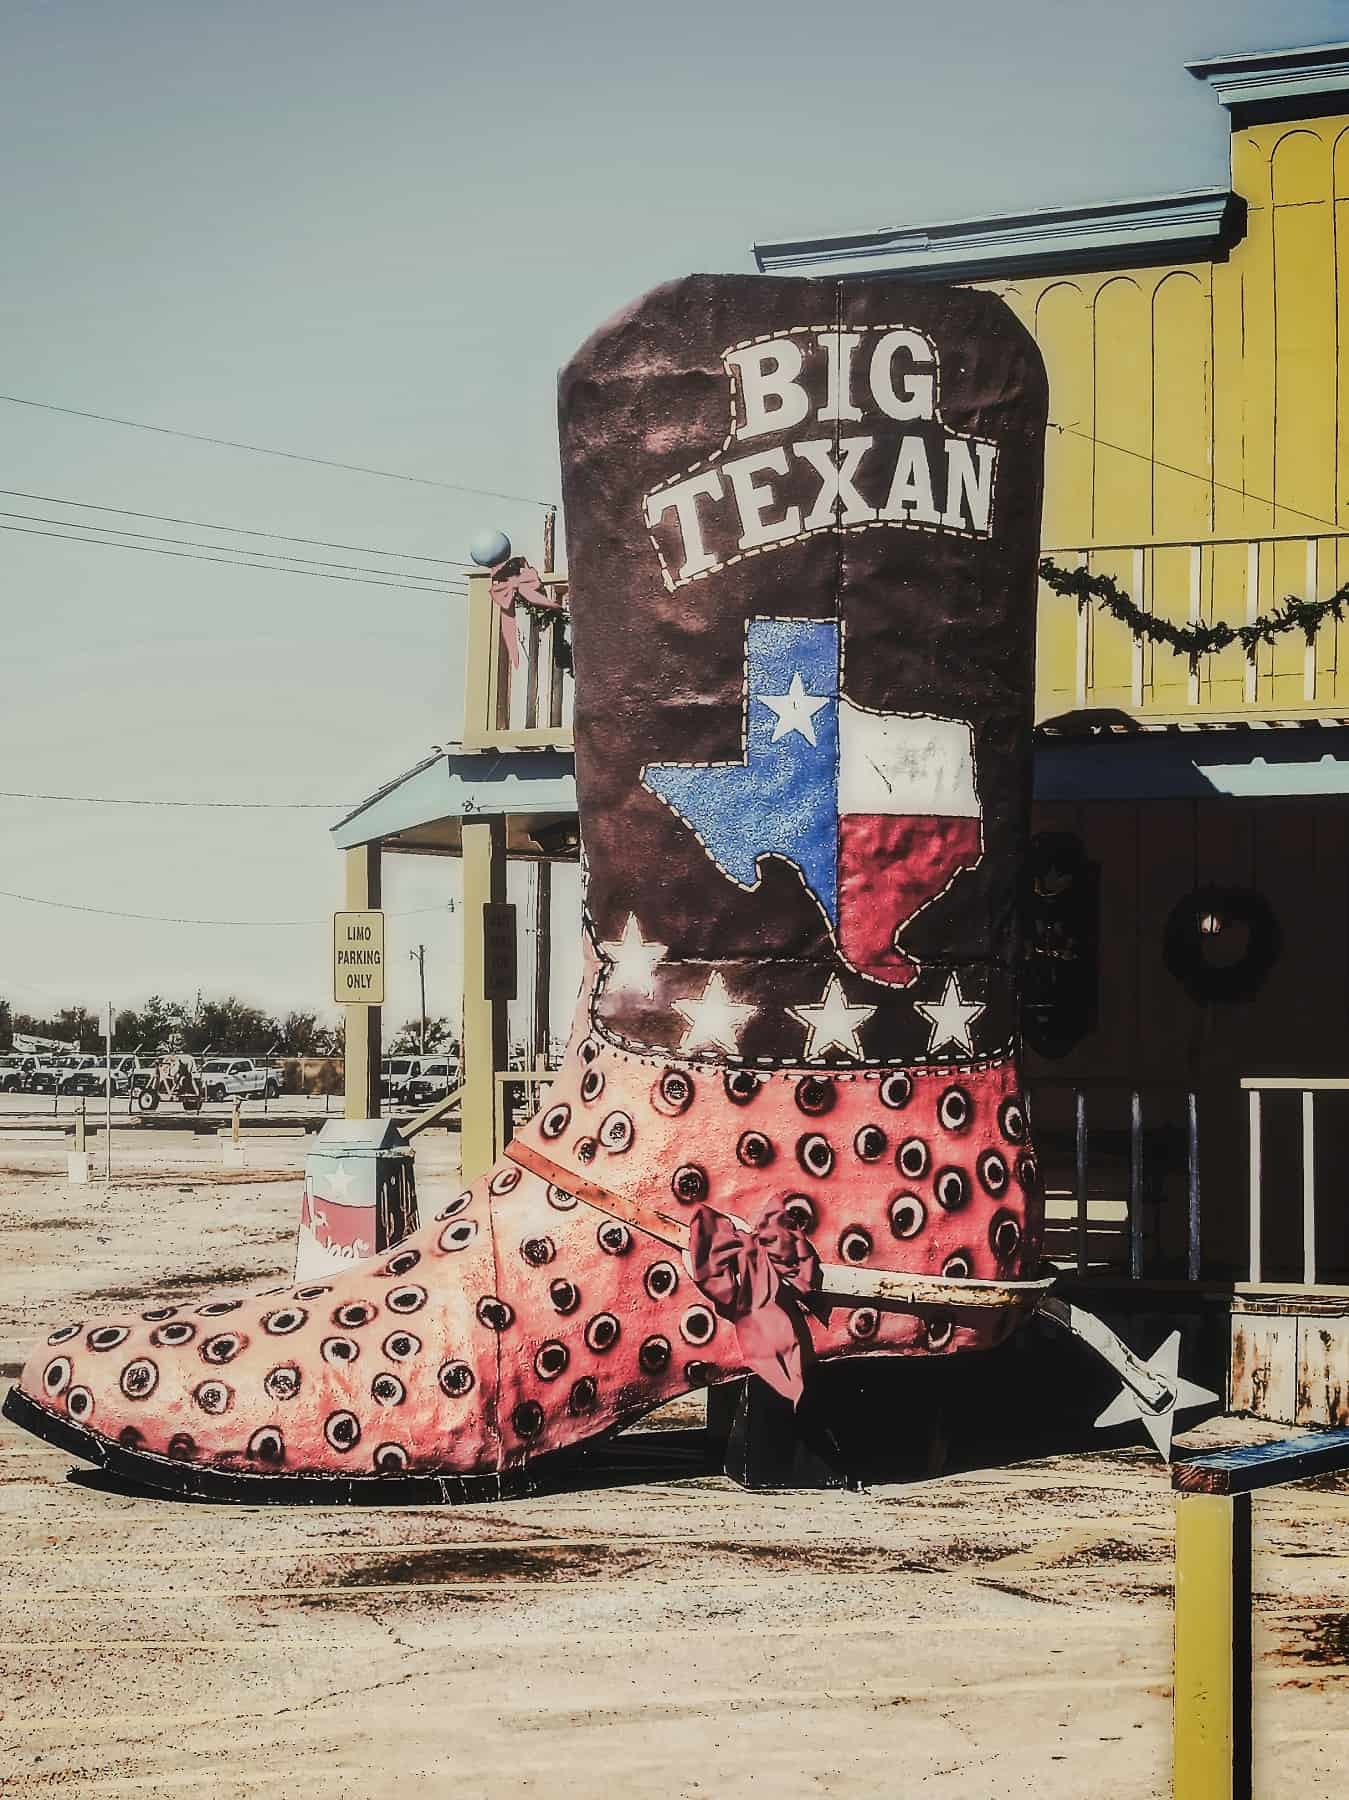 Texas Travel For Eco-Conscious Travel